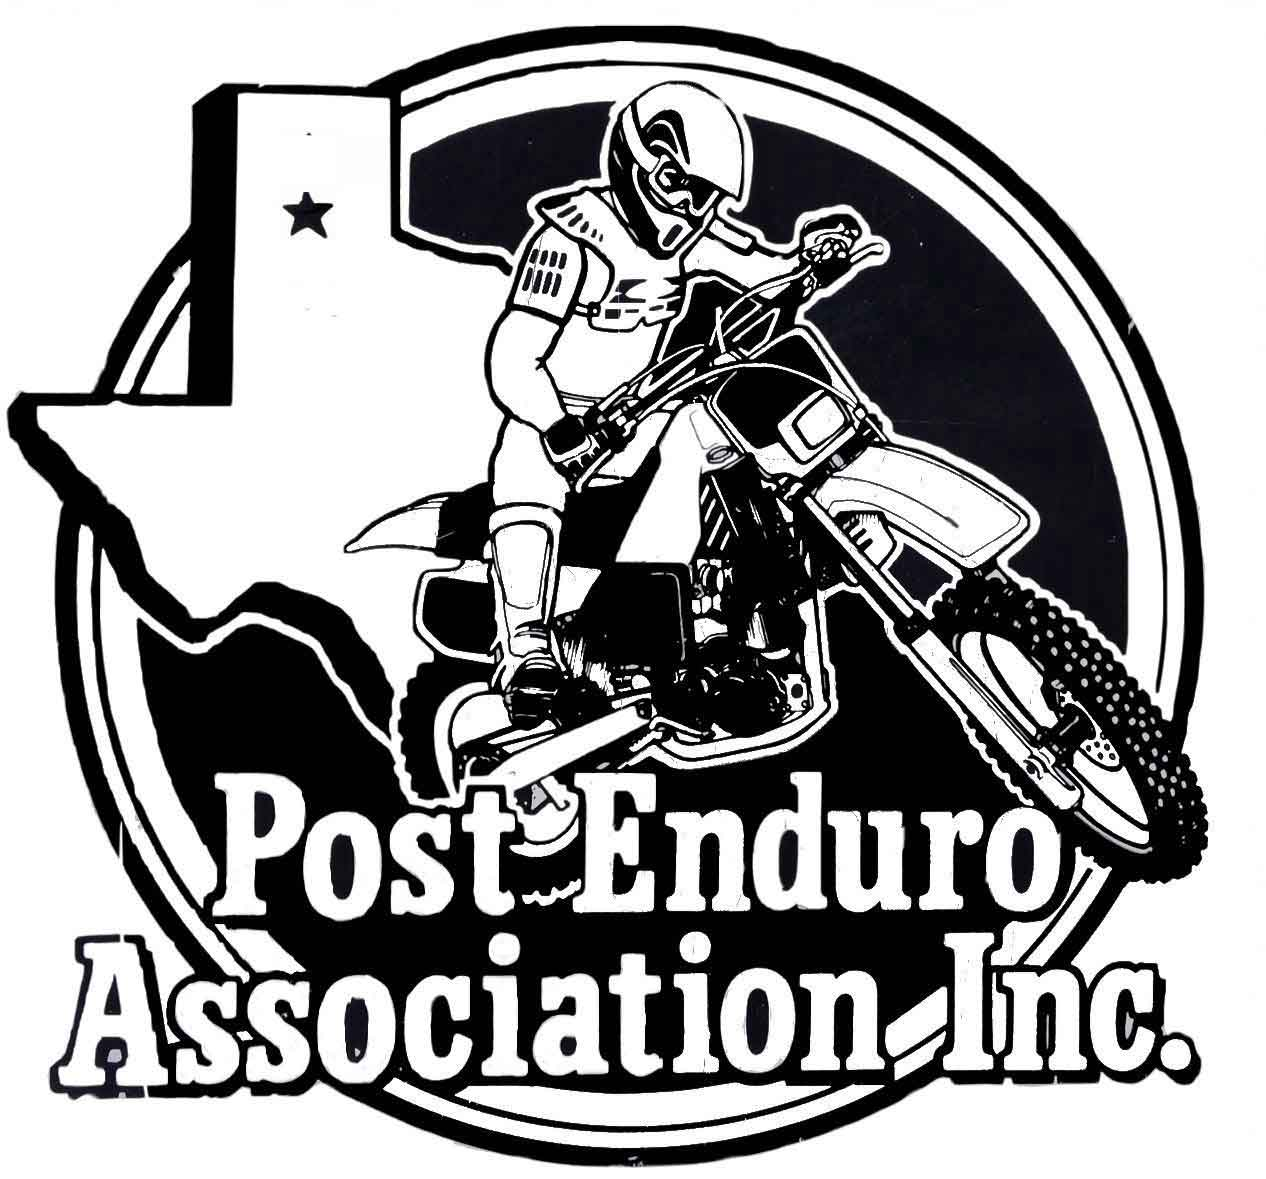 Post Enduro Association